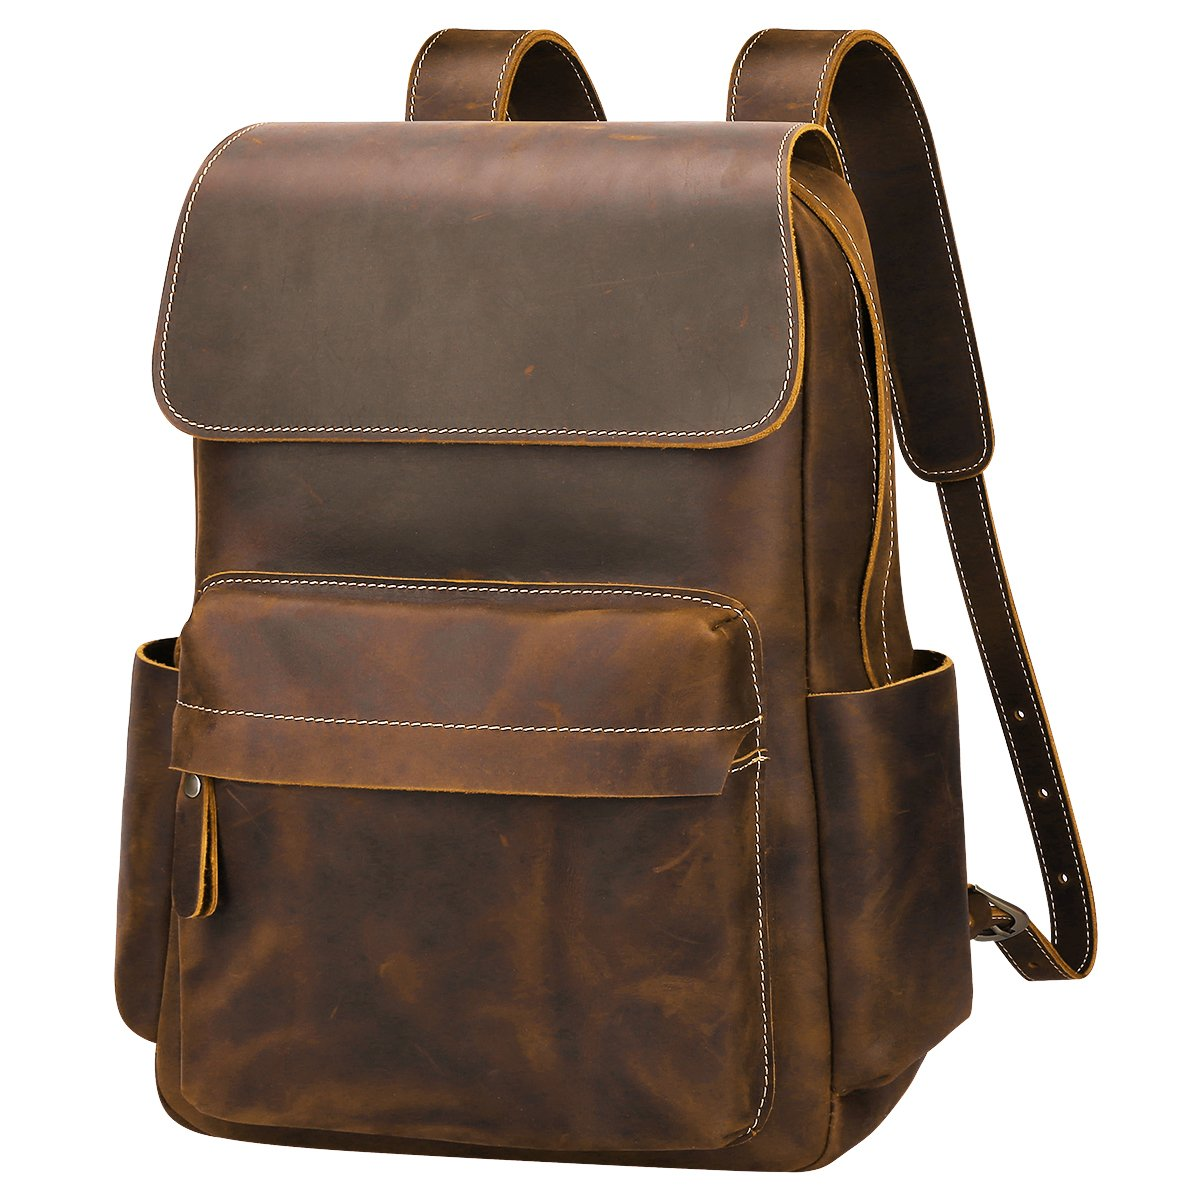 S-ZONE Casual Crazy Horse Real Genuine Leather Backpack Fashion Bag Daypack S-ZONE D10V056B